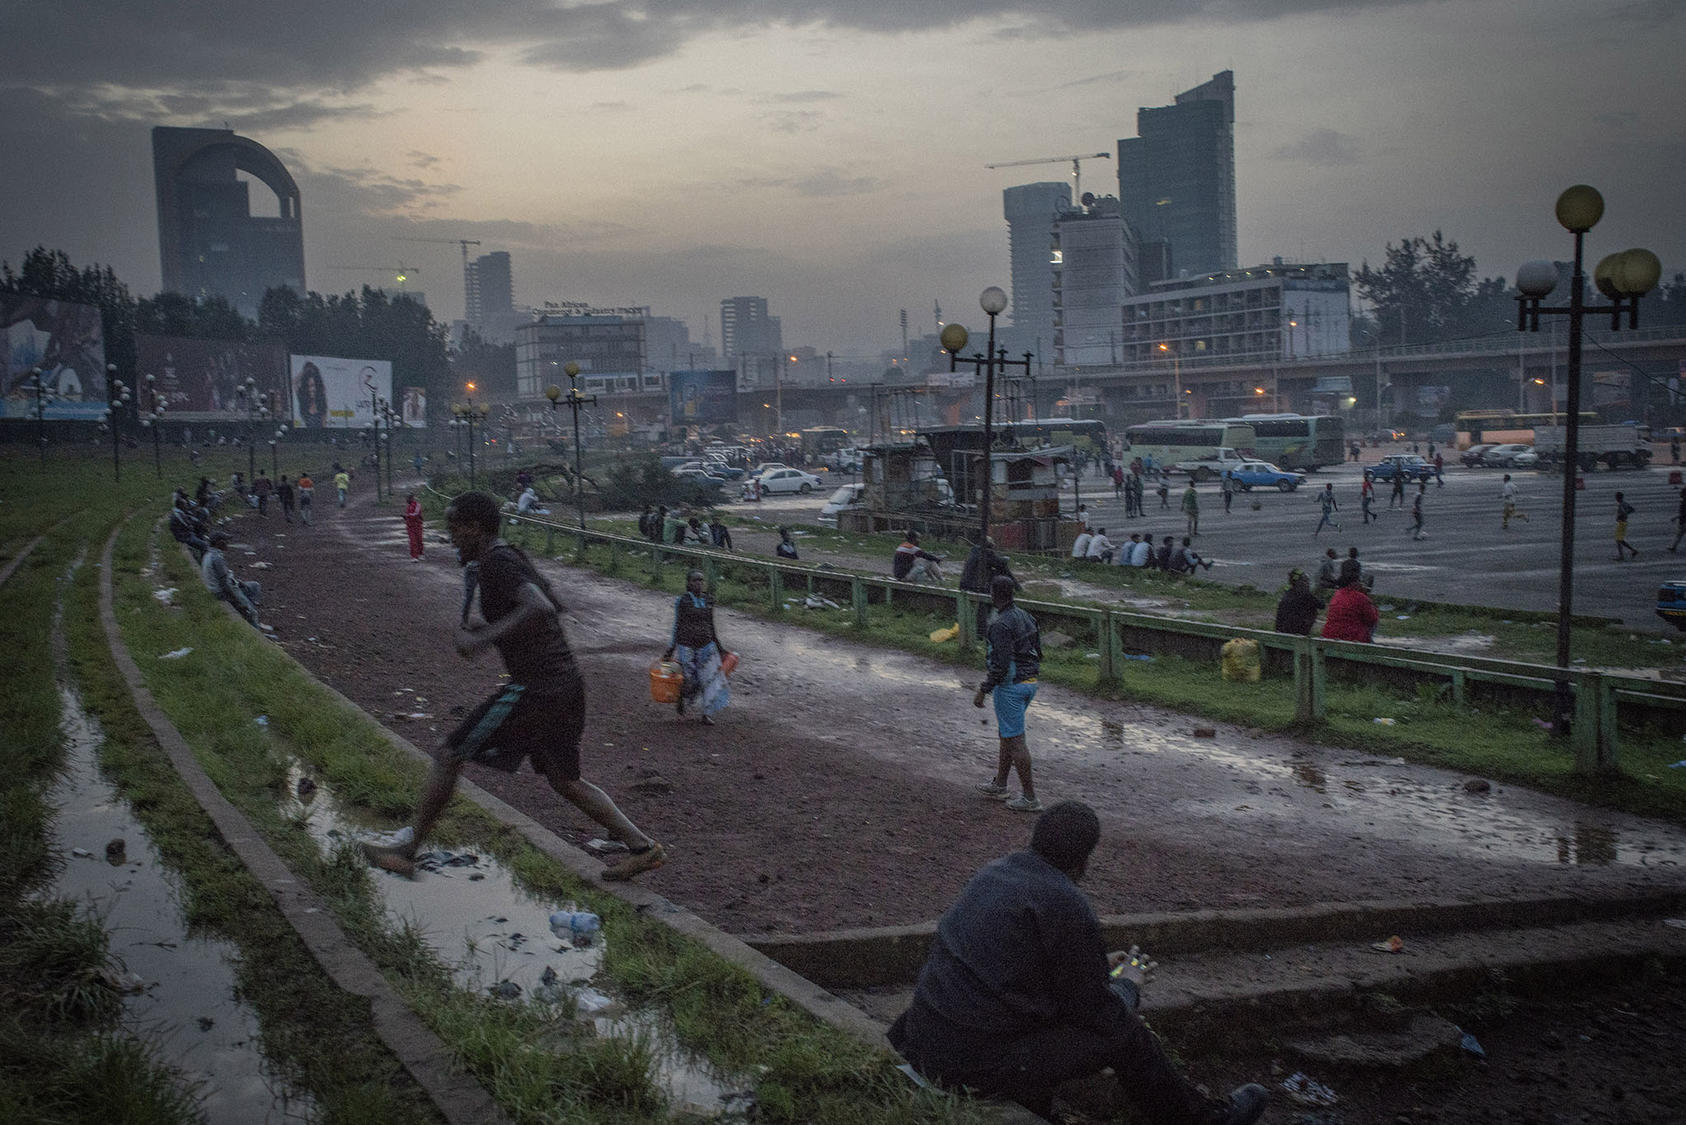 People gather at Meskel Square in Addis Ababa, the capital of Ethiopia, June 25 2018. (Laura Boushnak/The New York Times)